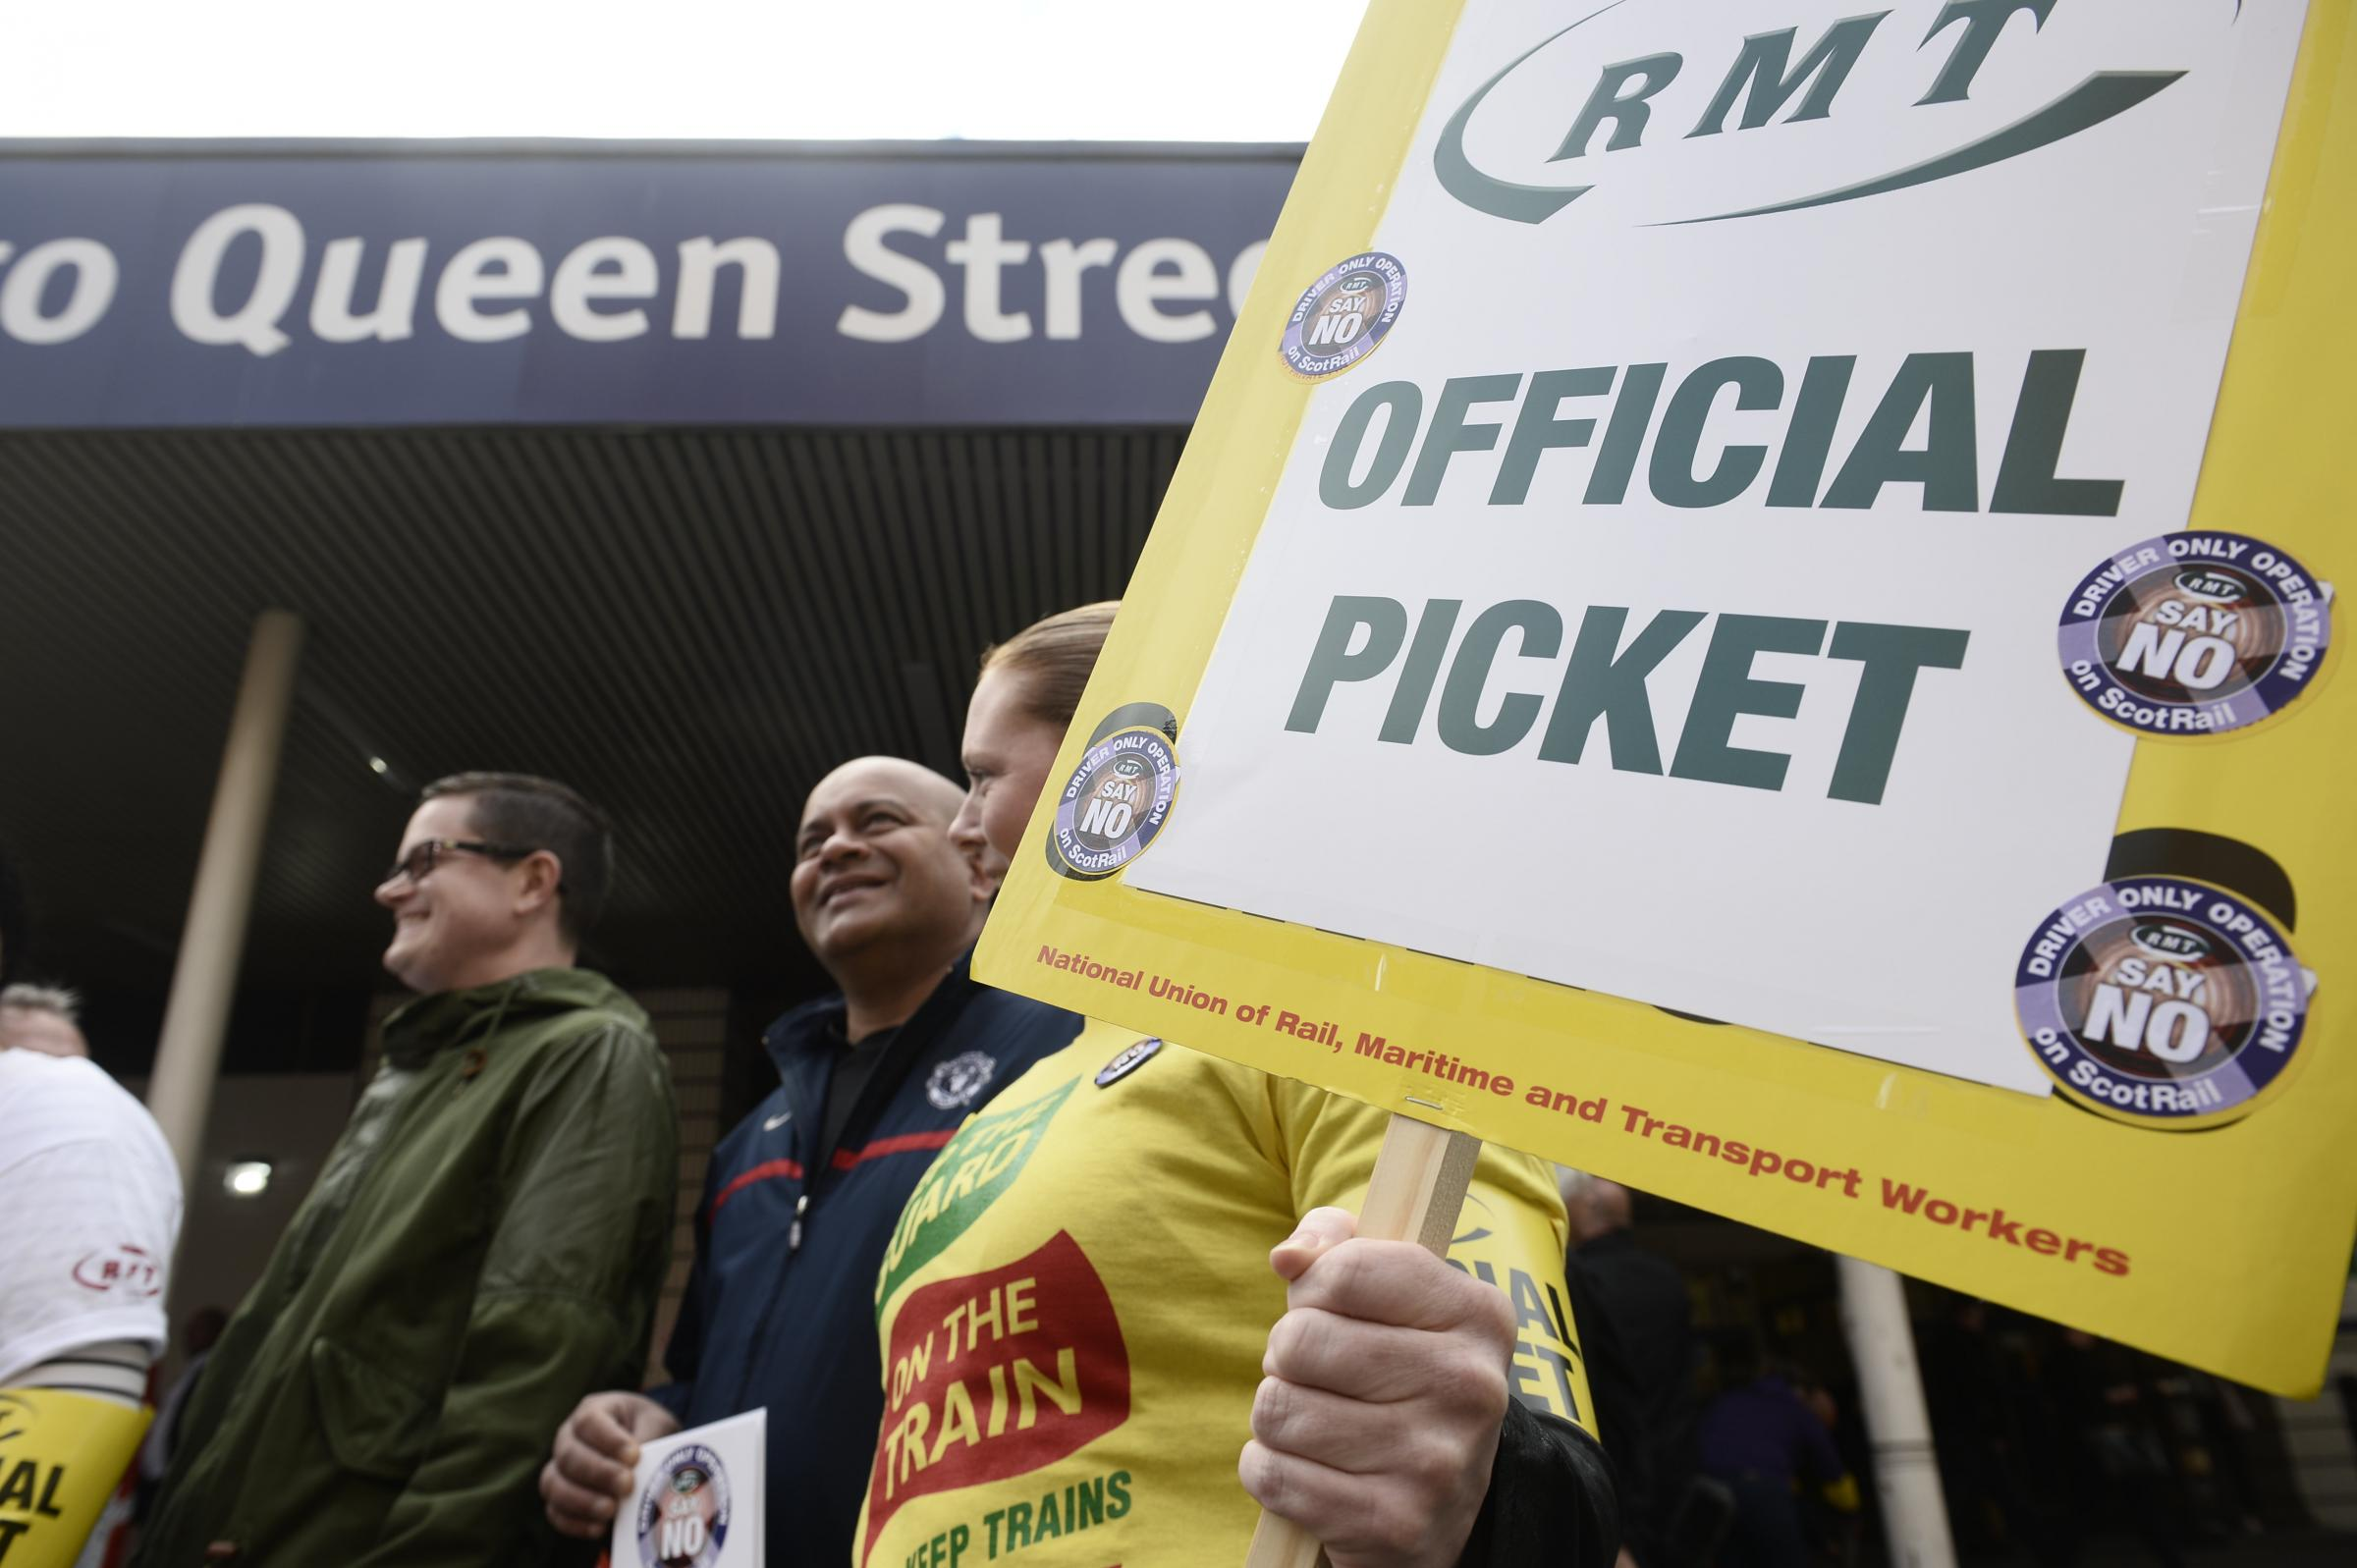 RMT union confirm more strikes could take place during COP26 in Glasgow